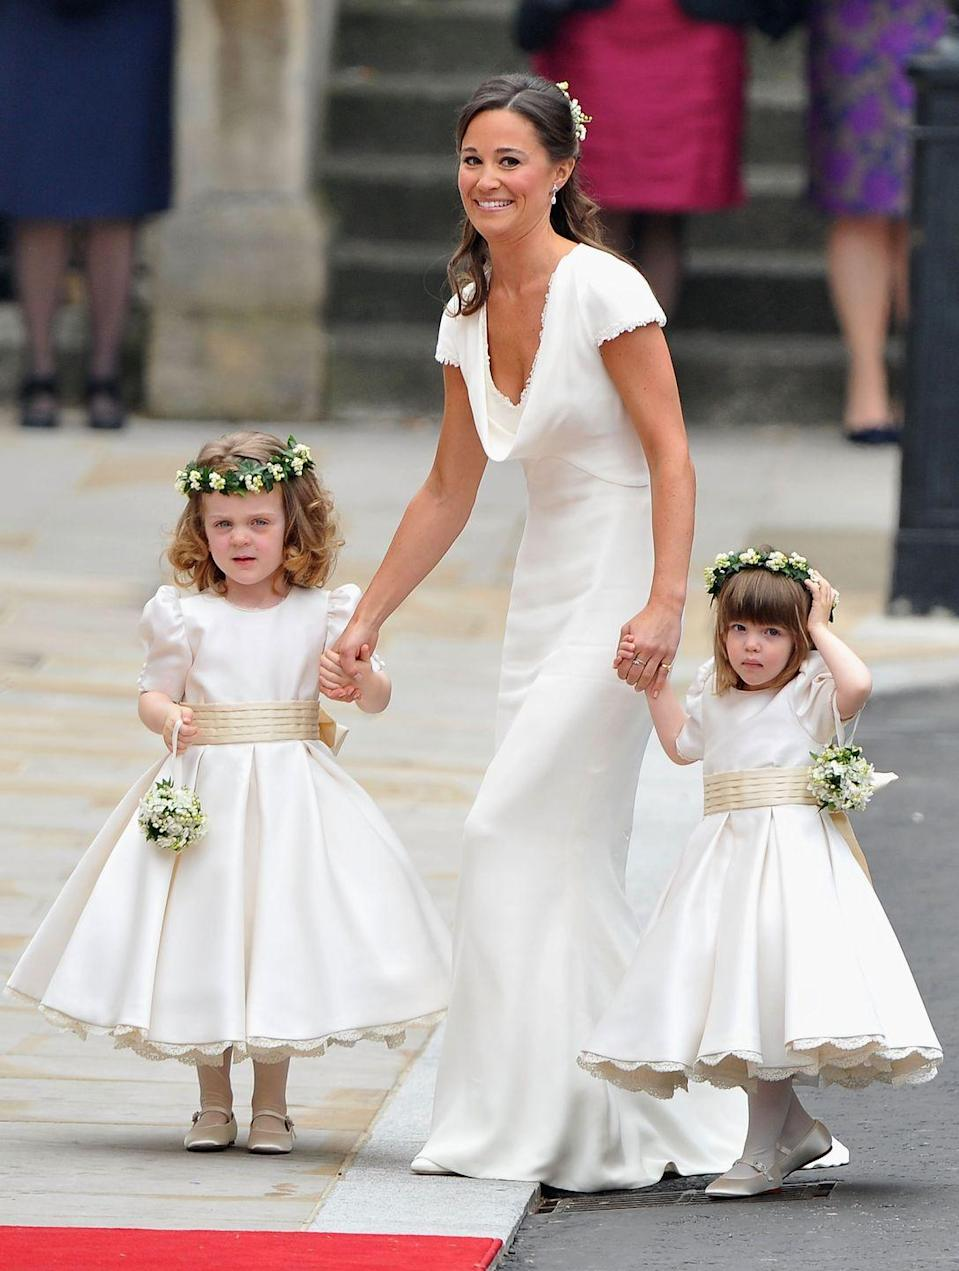 <p>Pippa was a hot talking point on the day of the wedding, as a result of her Alexander McQueen by Sarah Burton gown and svelte physique (and yes, by that we mean her bottom).</p><p>'It is a bit startling to achieve global recognition before the age of 30 on account of your sister, your brother-in-law and your bottom,' the mother-of-one wrote in You magazine a year after the wedding. </p><p>Pippa's dress was made of an ivory, satin-based crepe. It had the same buttons and lace trims as the bride's dress.</p>